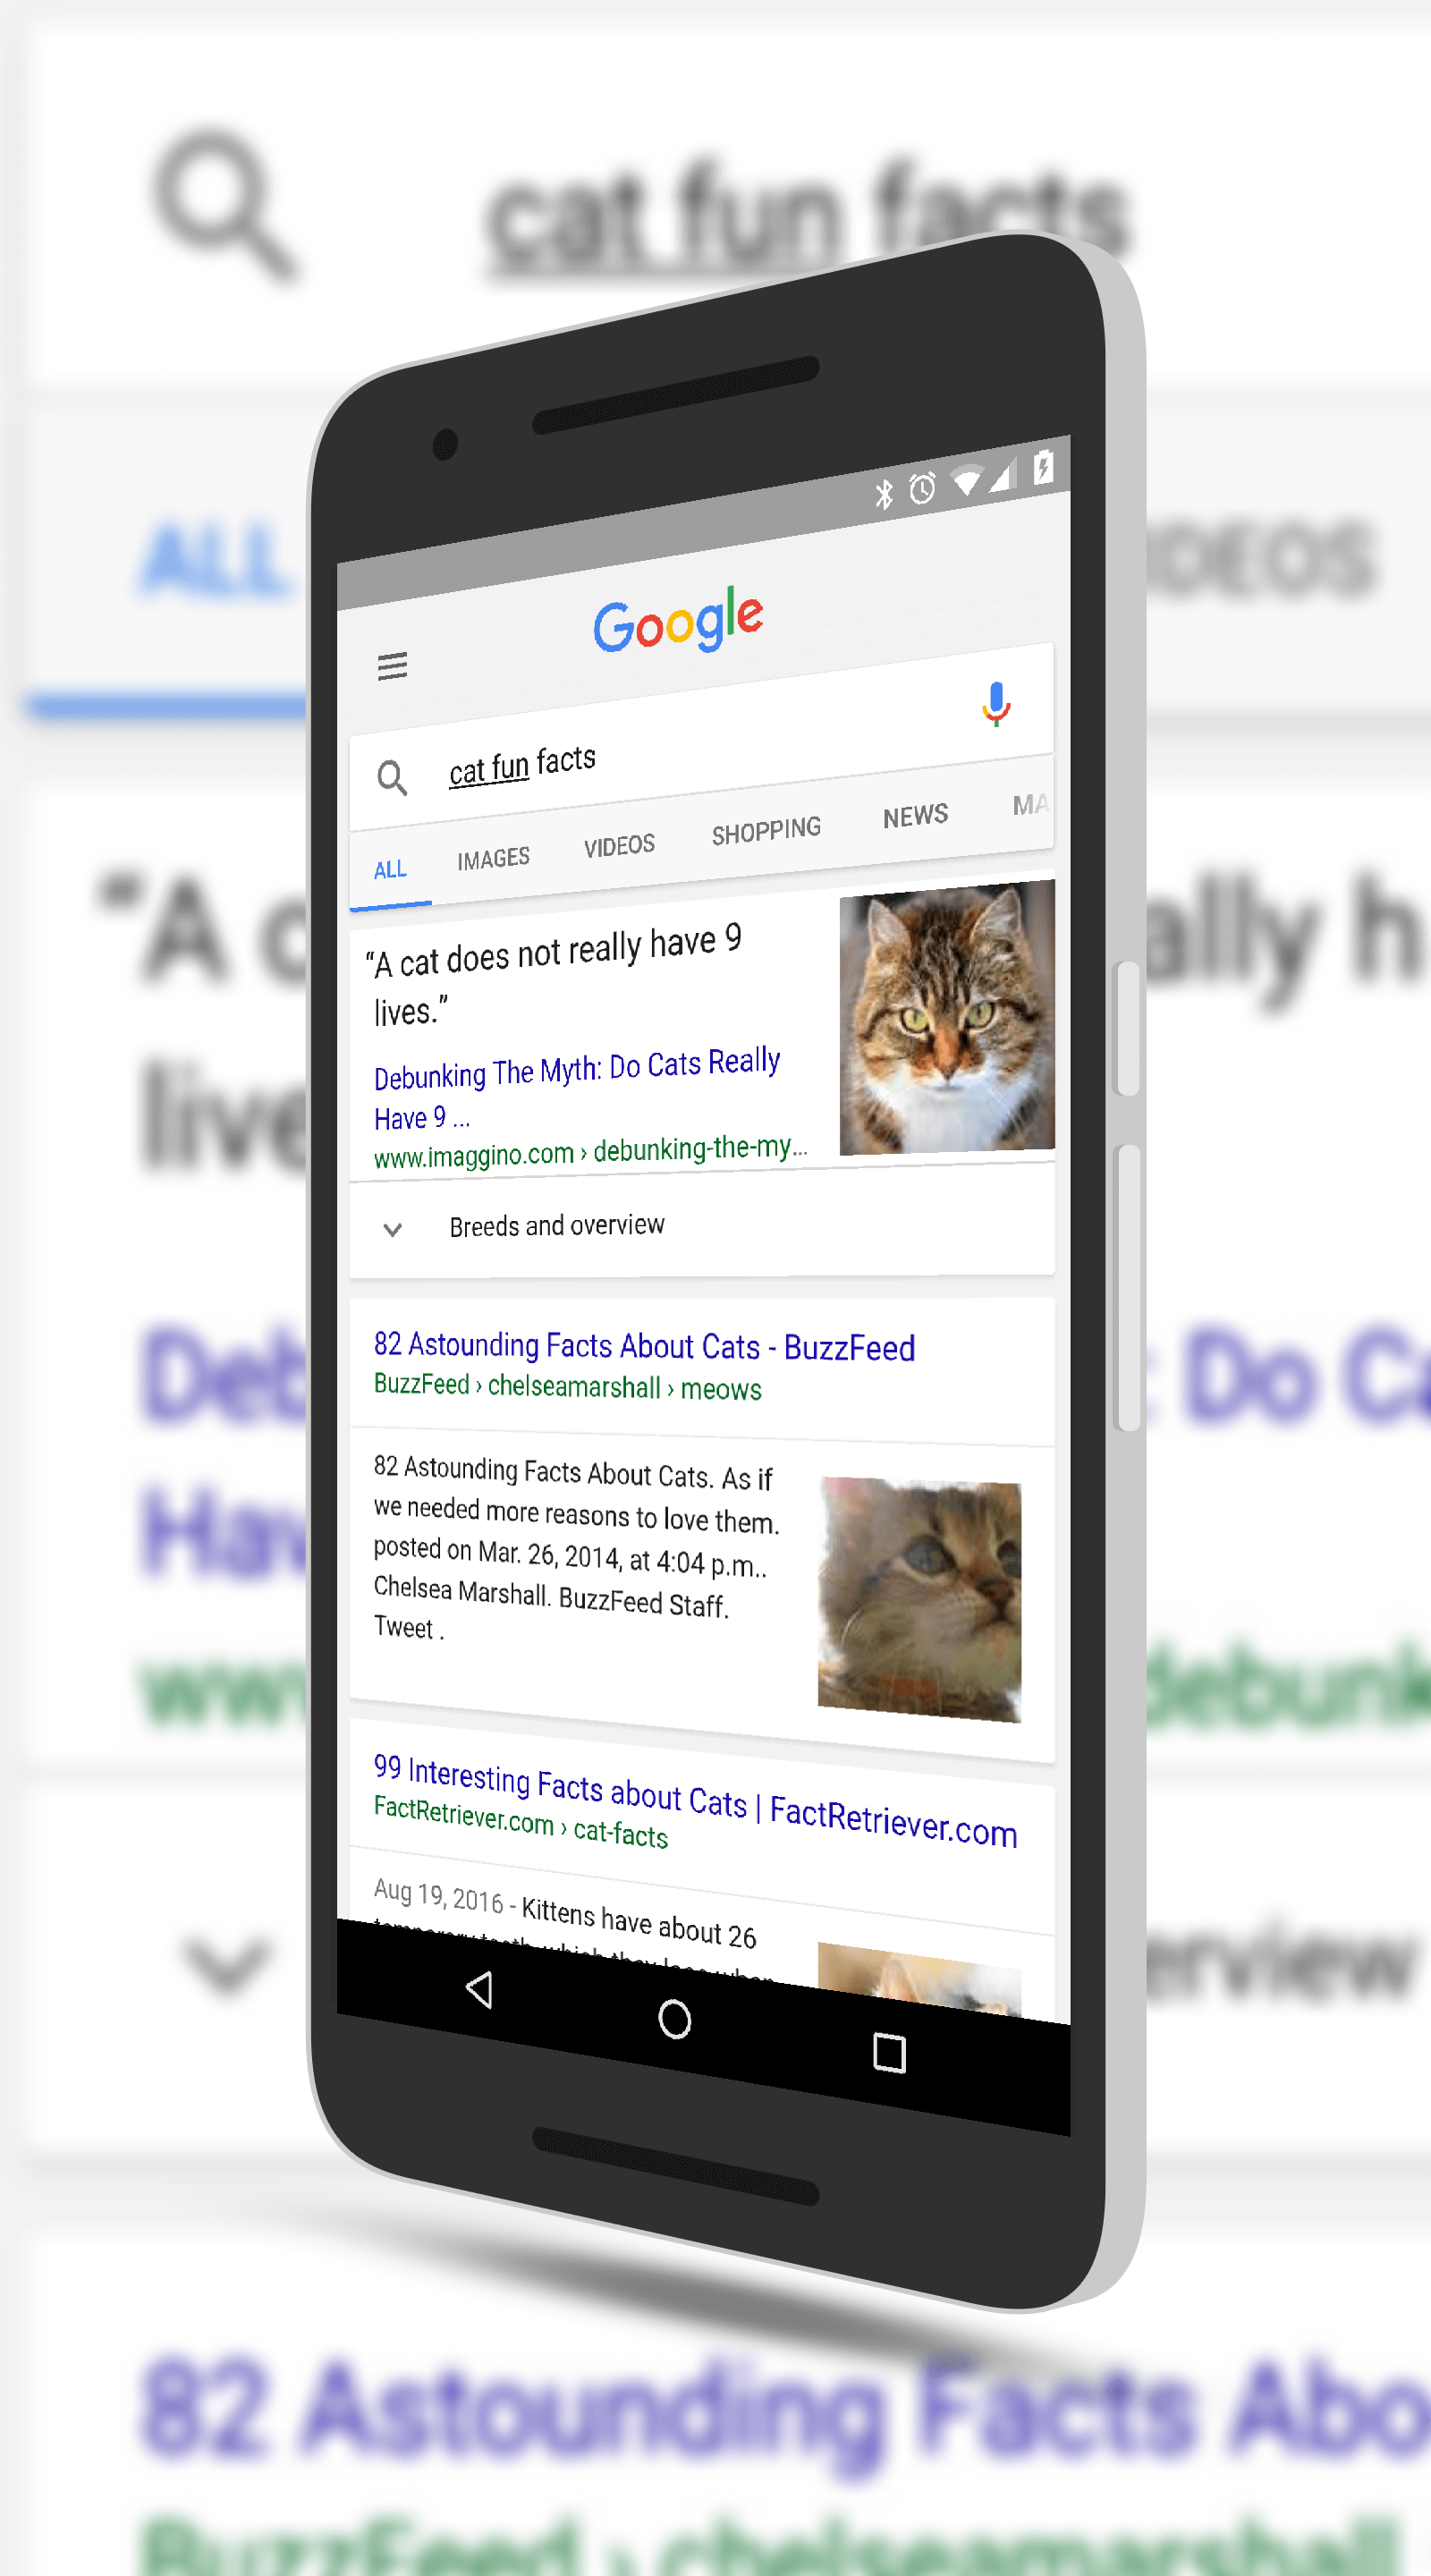 Cat Fun Facts in Google Search